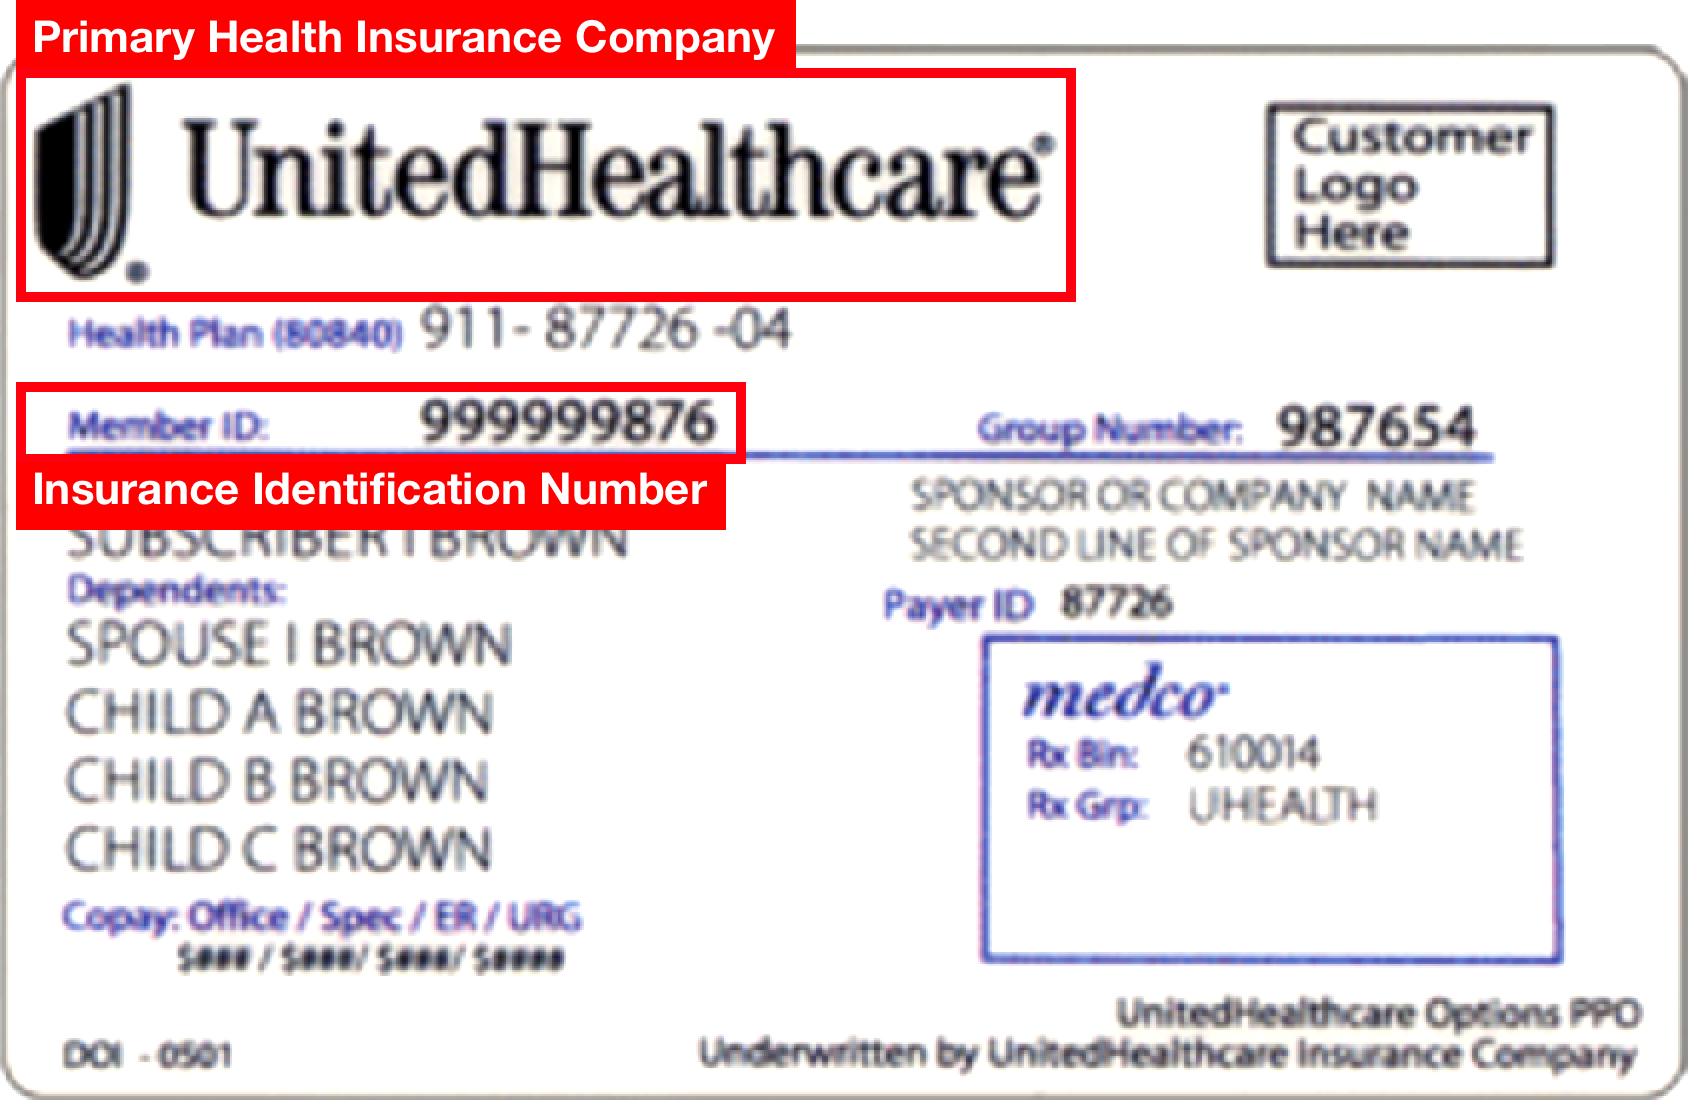 United Healthcare Credential